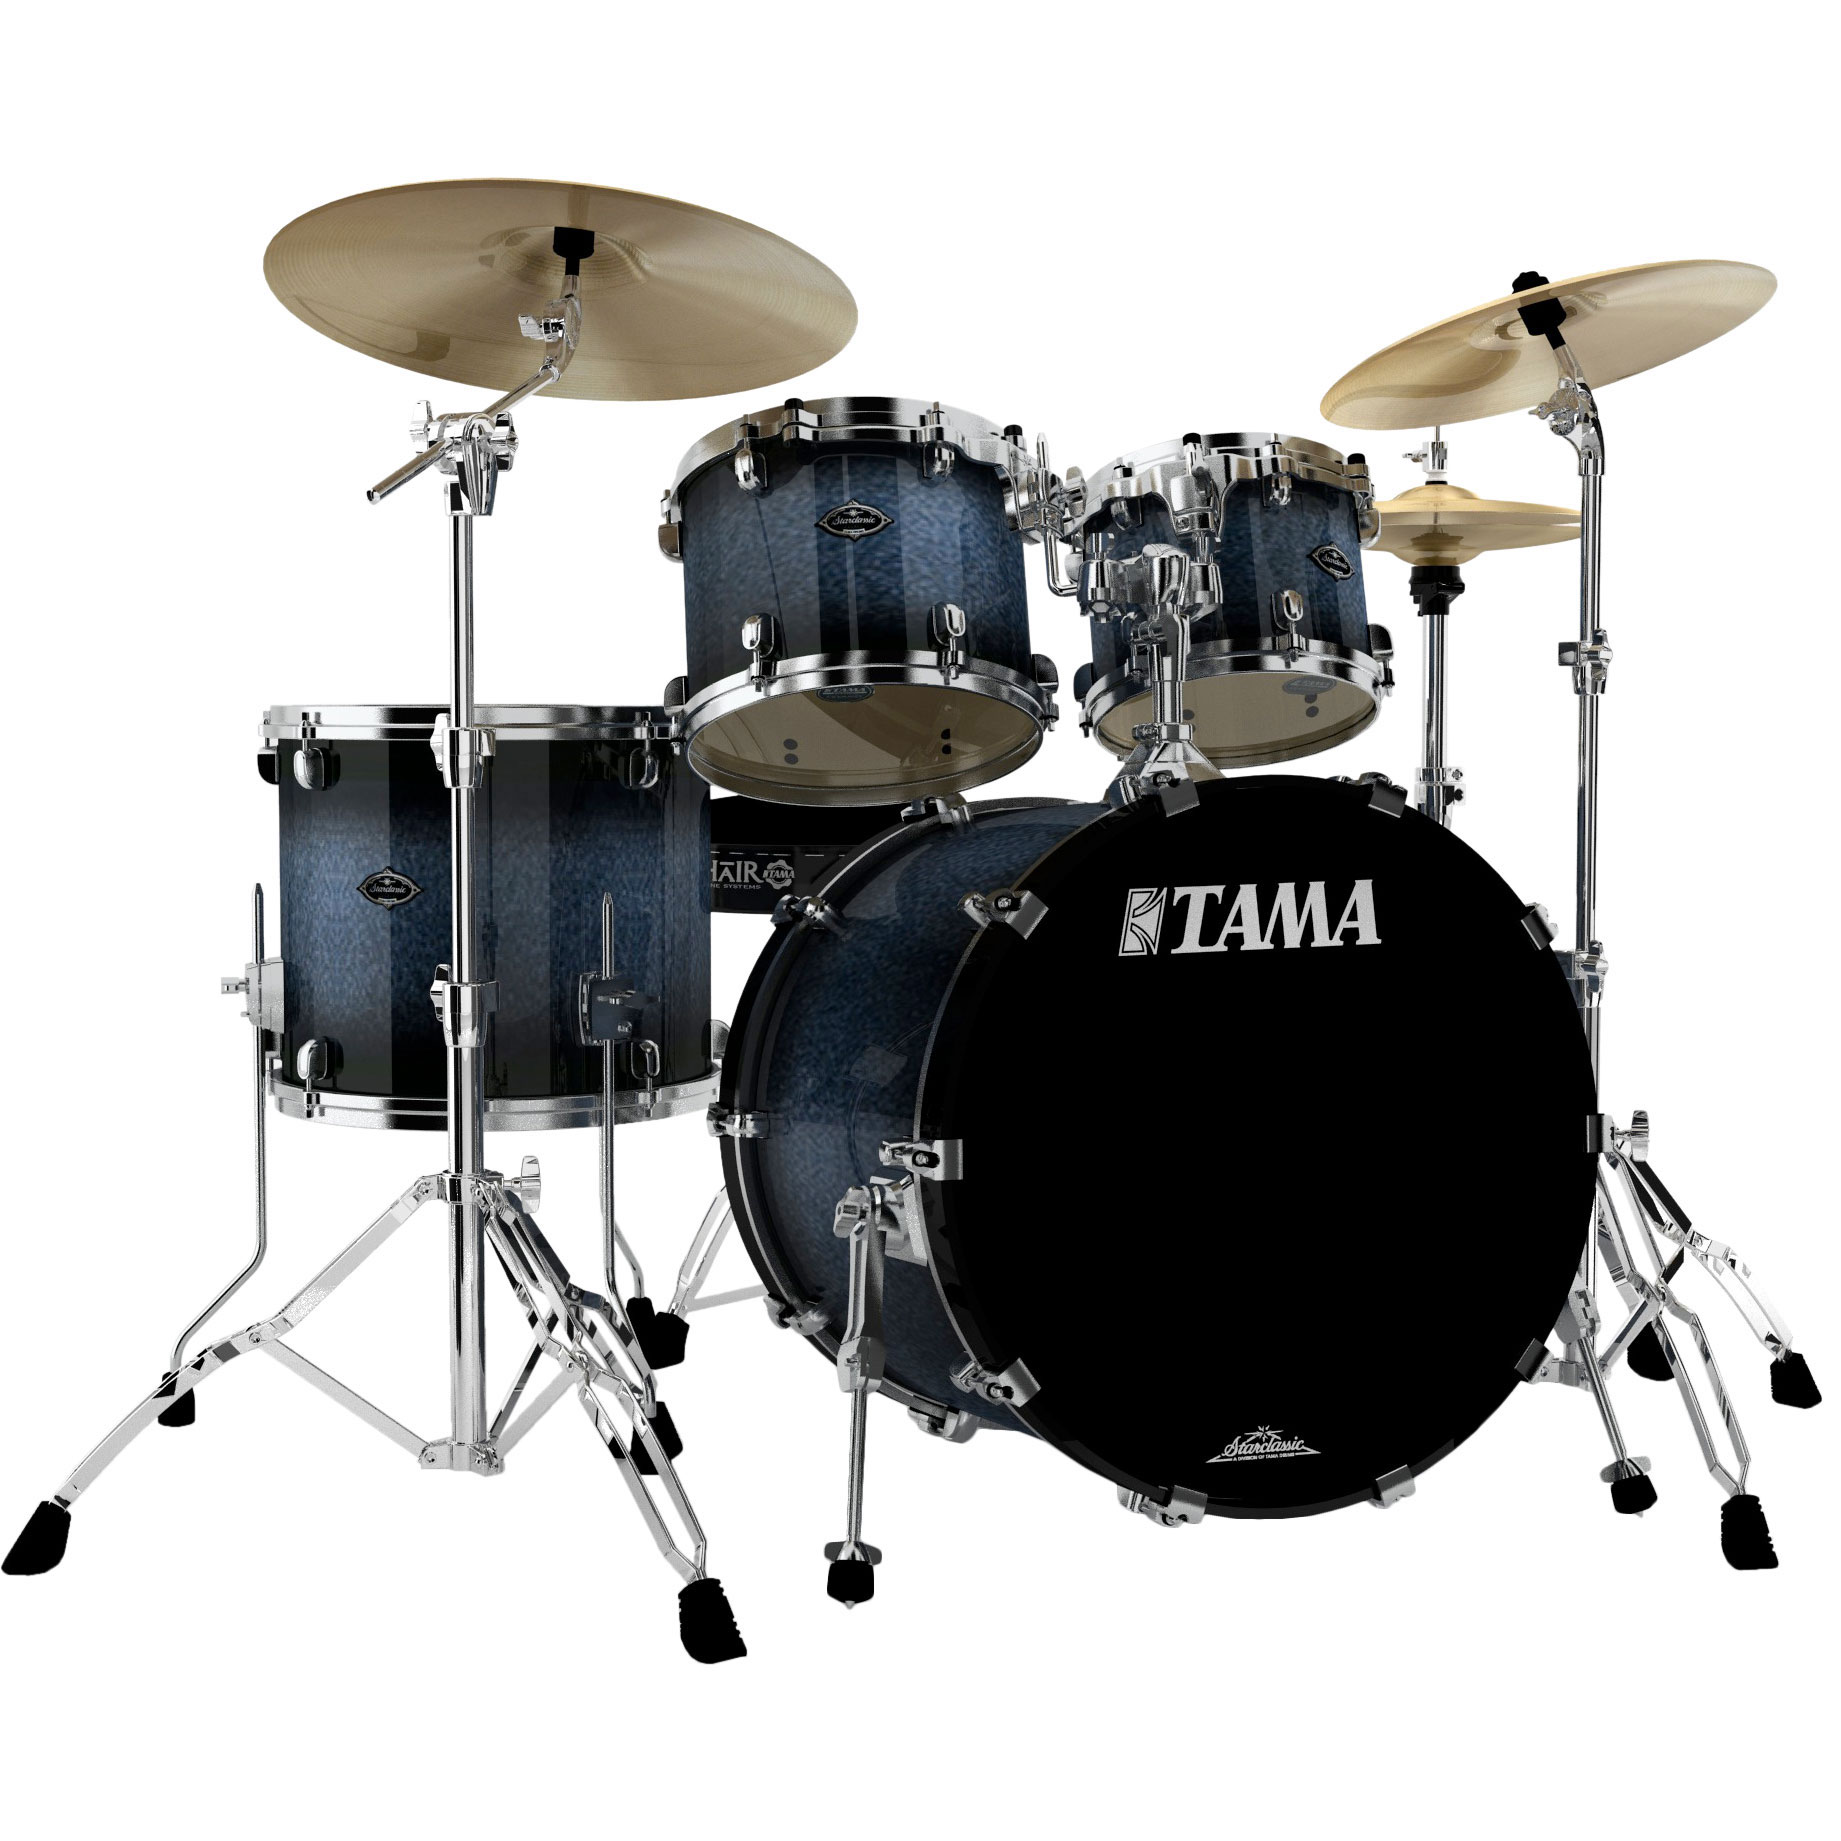 Tama Starclassic Performer B B 4 Piece Drum Set Shell Pack  22  Bass     Alternate Image for Tama Starclassic Performer B B 4 Piece Drum Set Shell  Pack